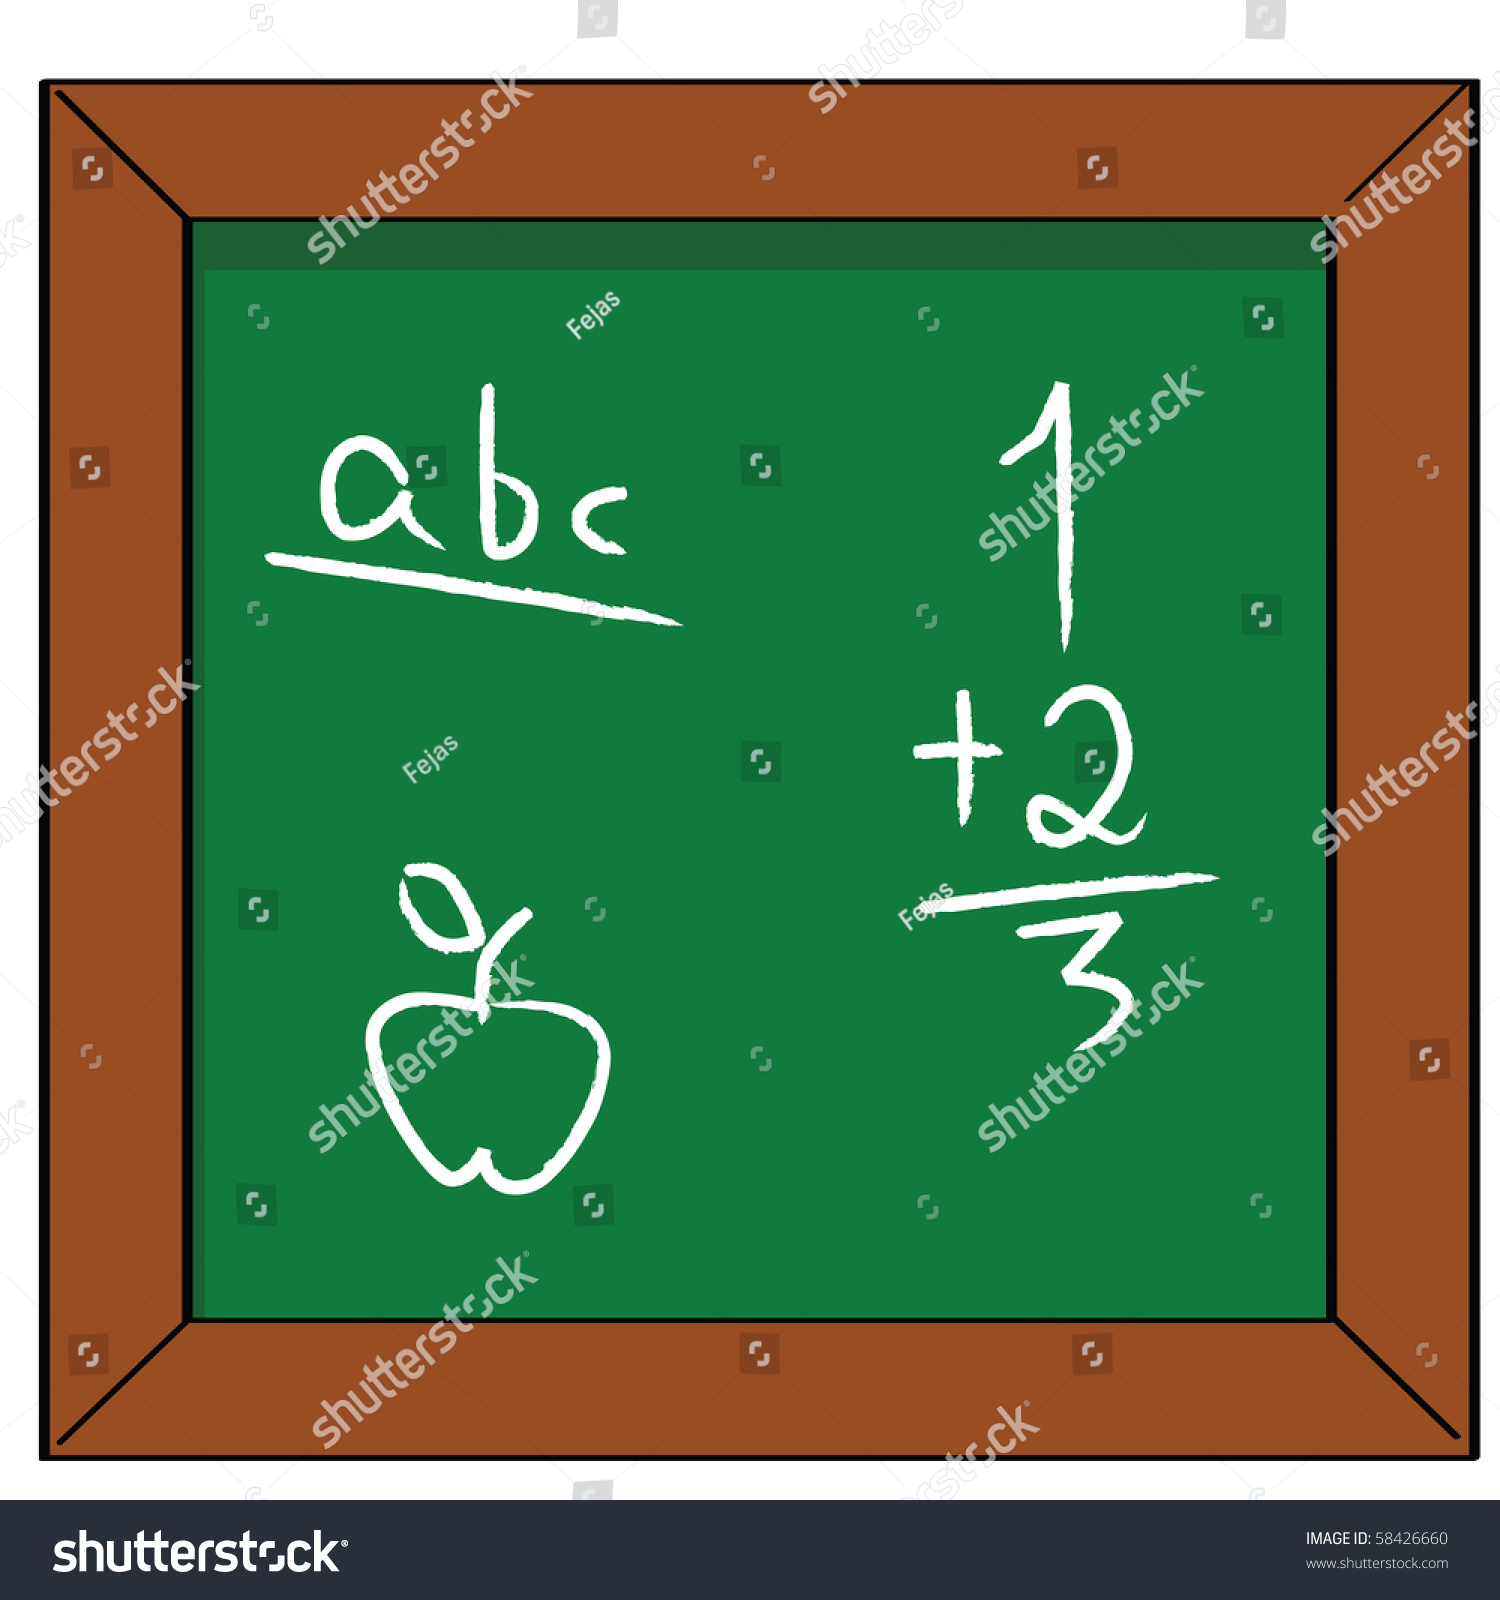 Worksheet Math And Reading cartoon jpeg illustration of a school blackboard with some basic save to lightbox